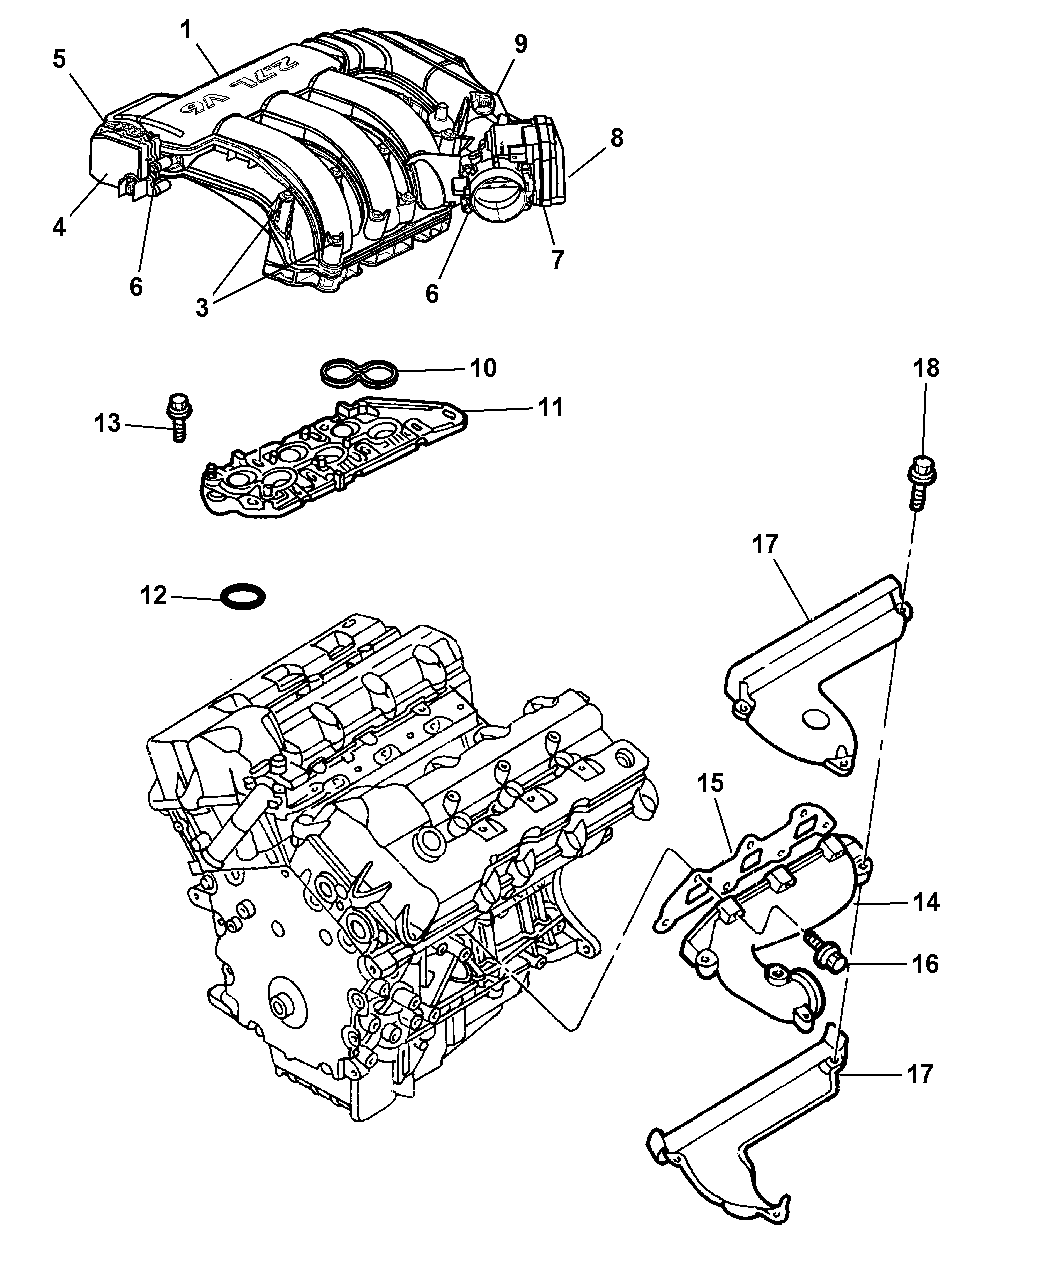 2006 chrysler sebring engine diagram